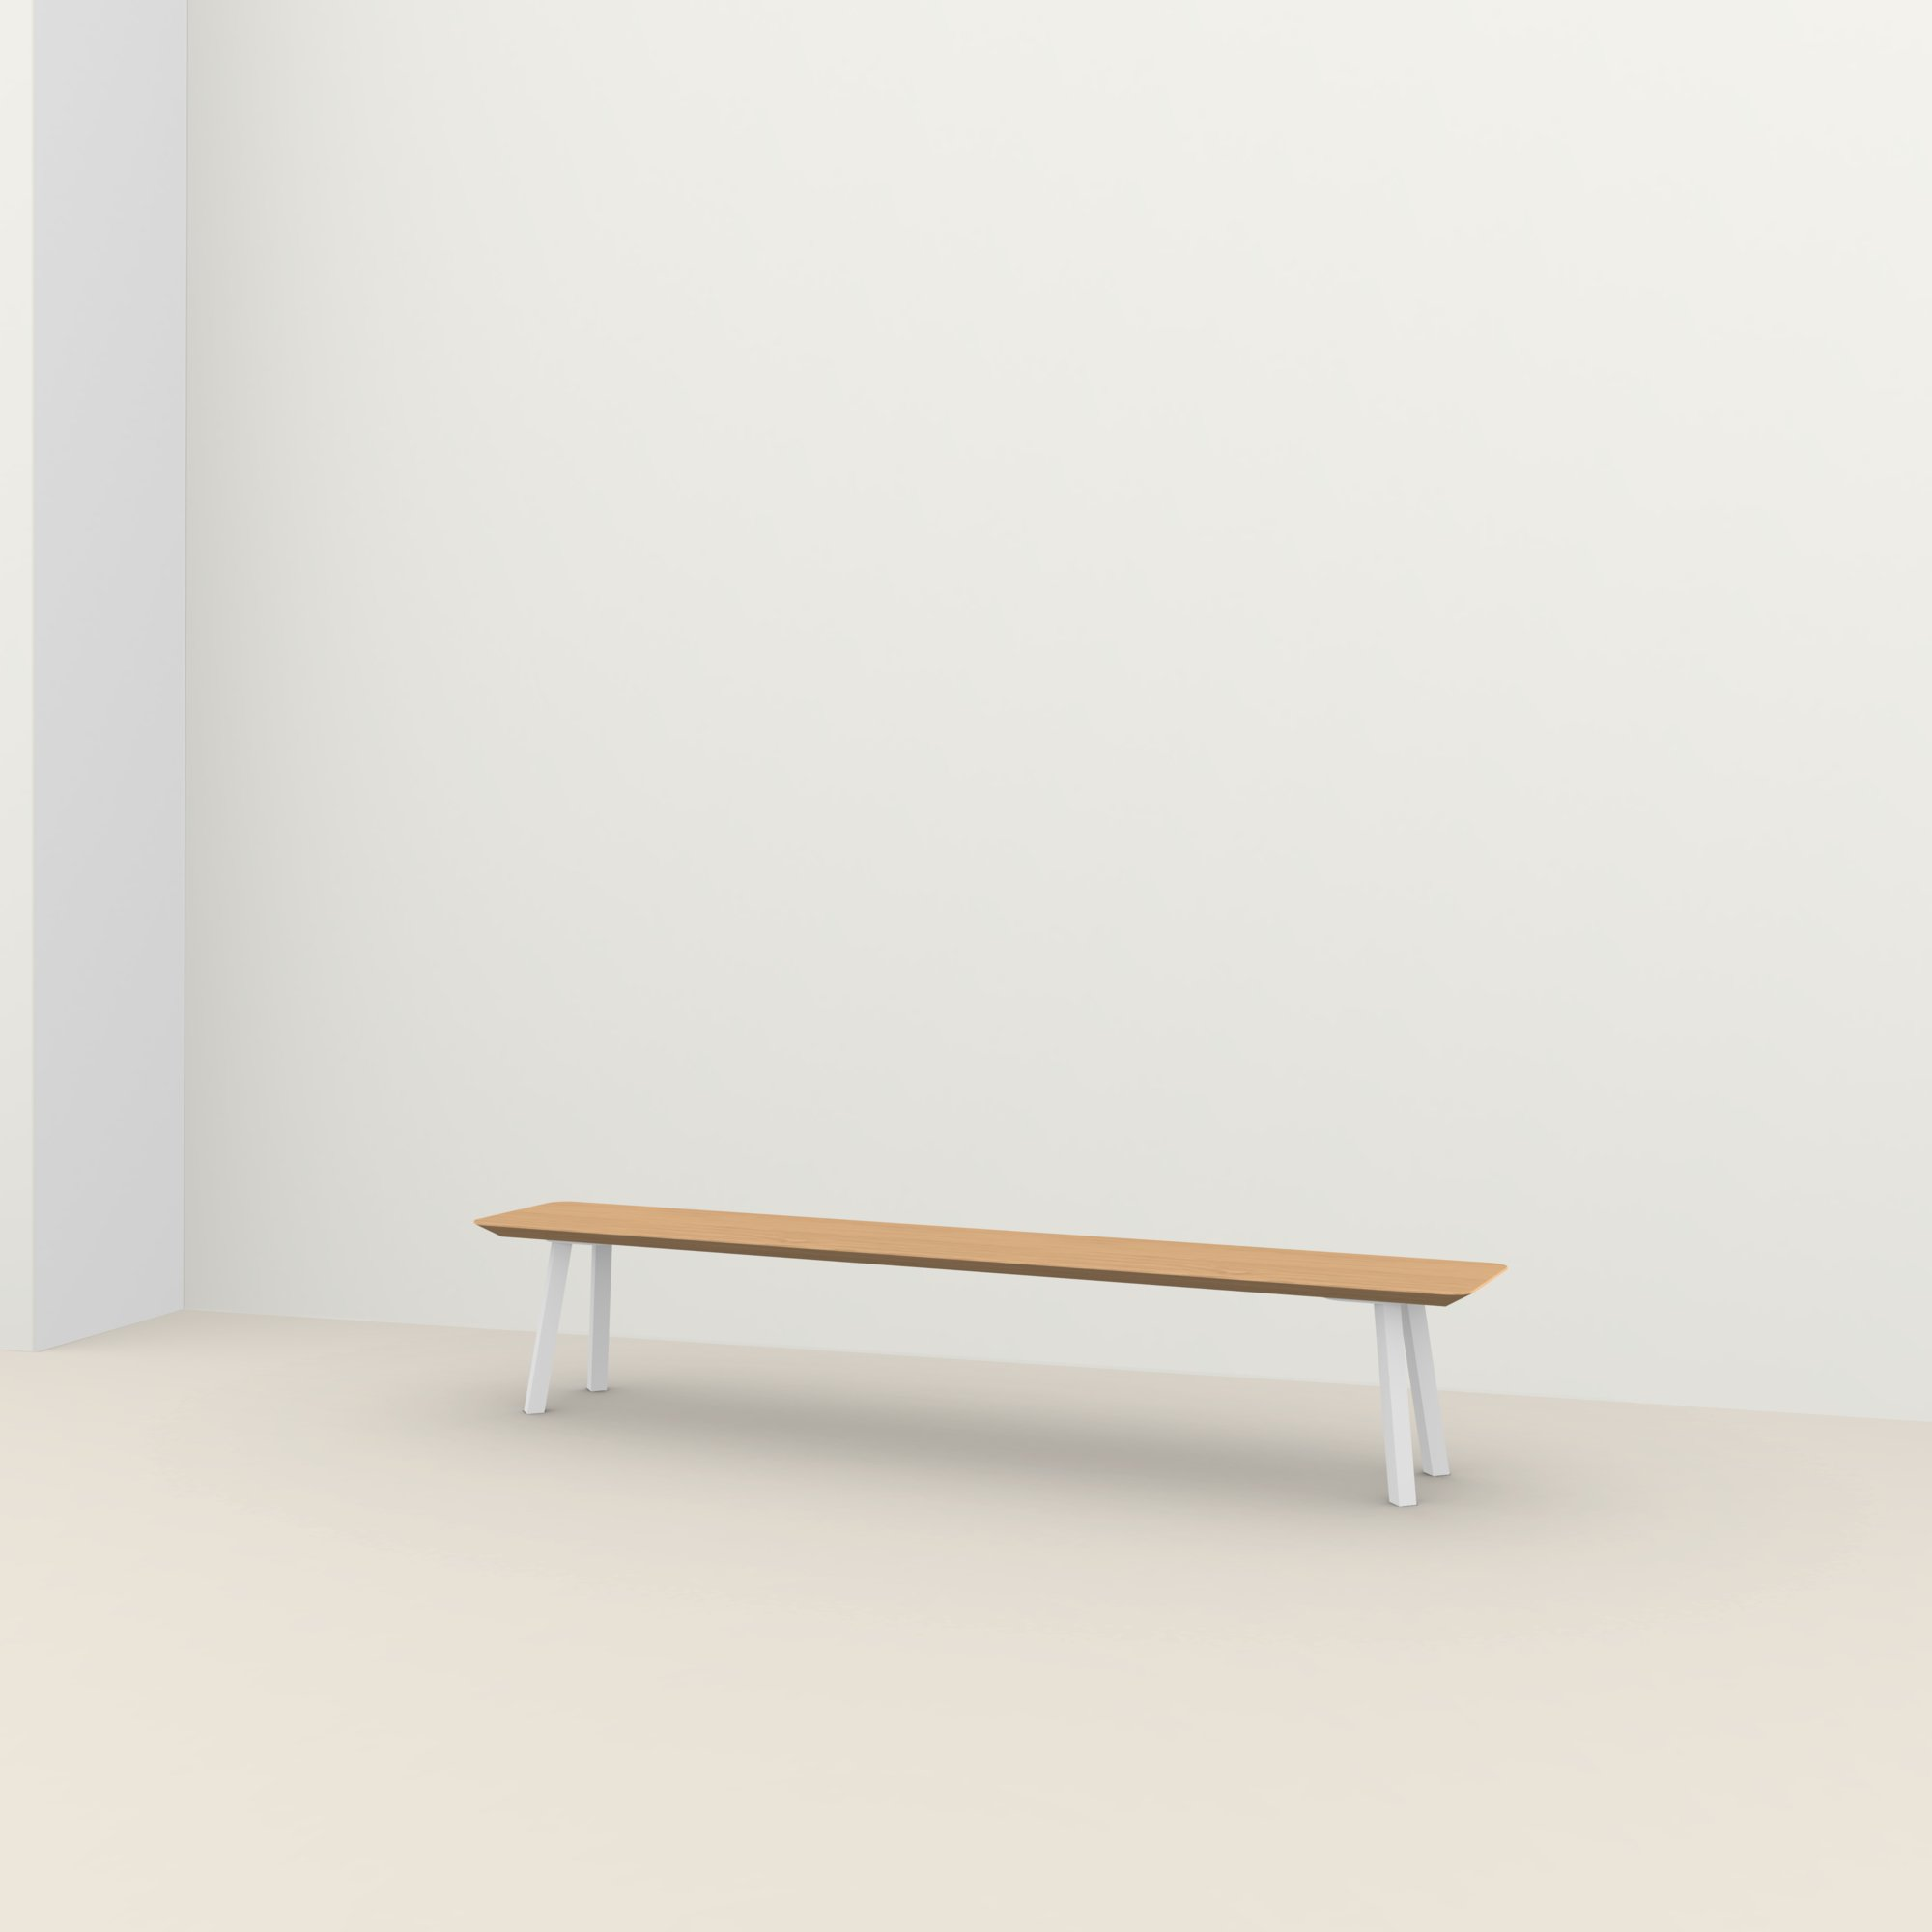 eettafelbank op maat | New Classic Bench Steel white powdercoating | Oak hardwax oil natural light 3041 | Studio HENK |